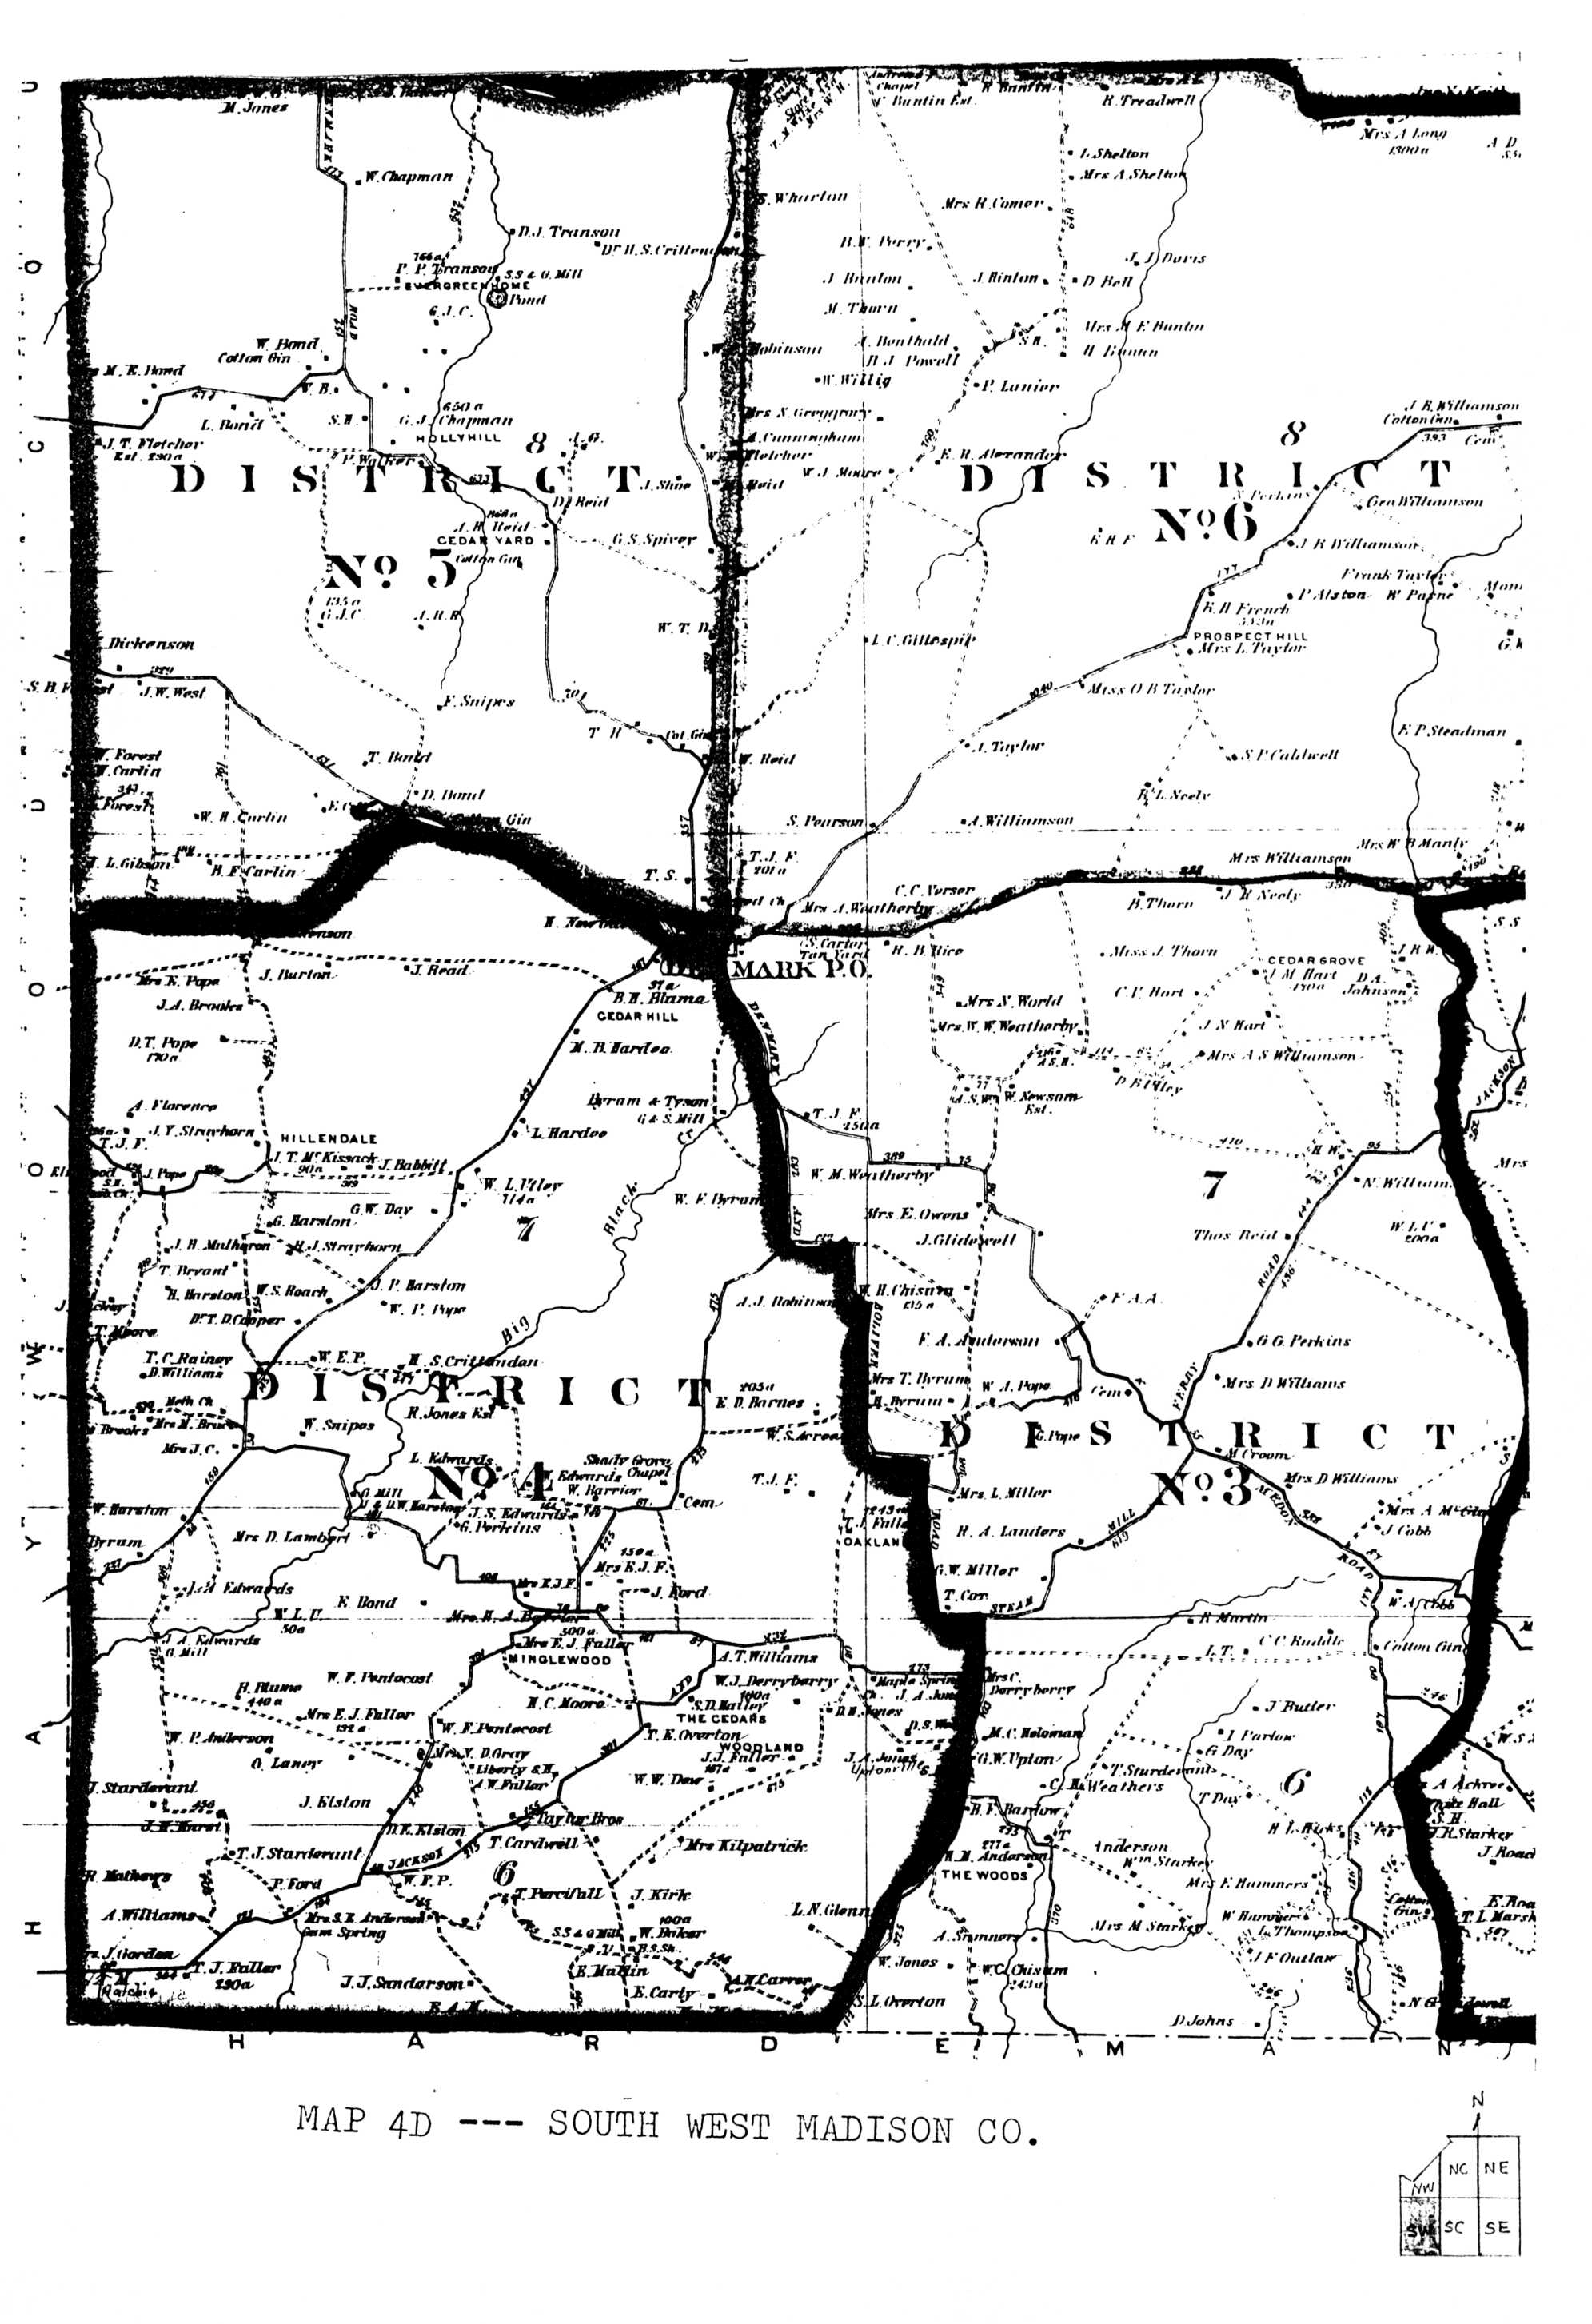 Maps Of Madison County Tennessee Historical And Genealogical